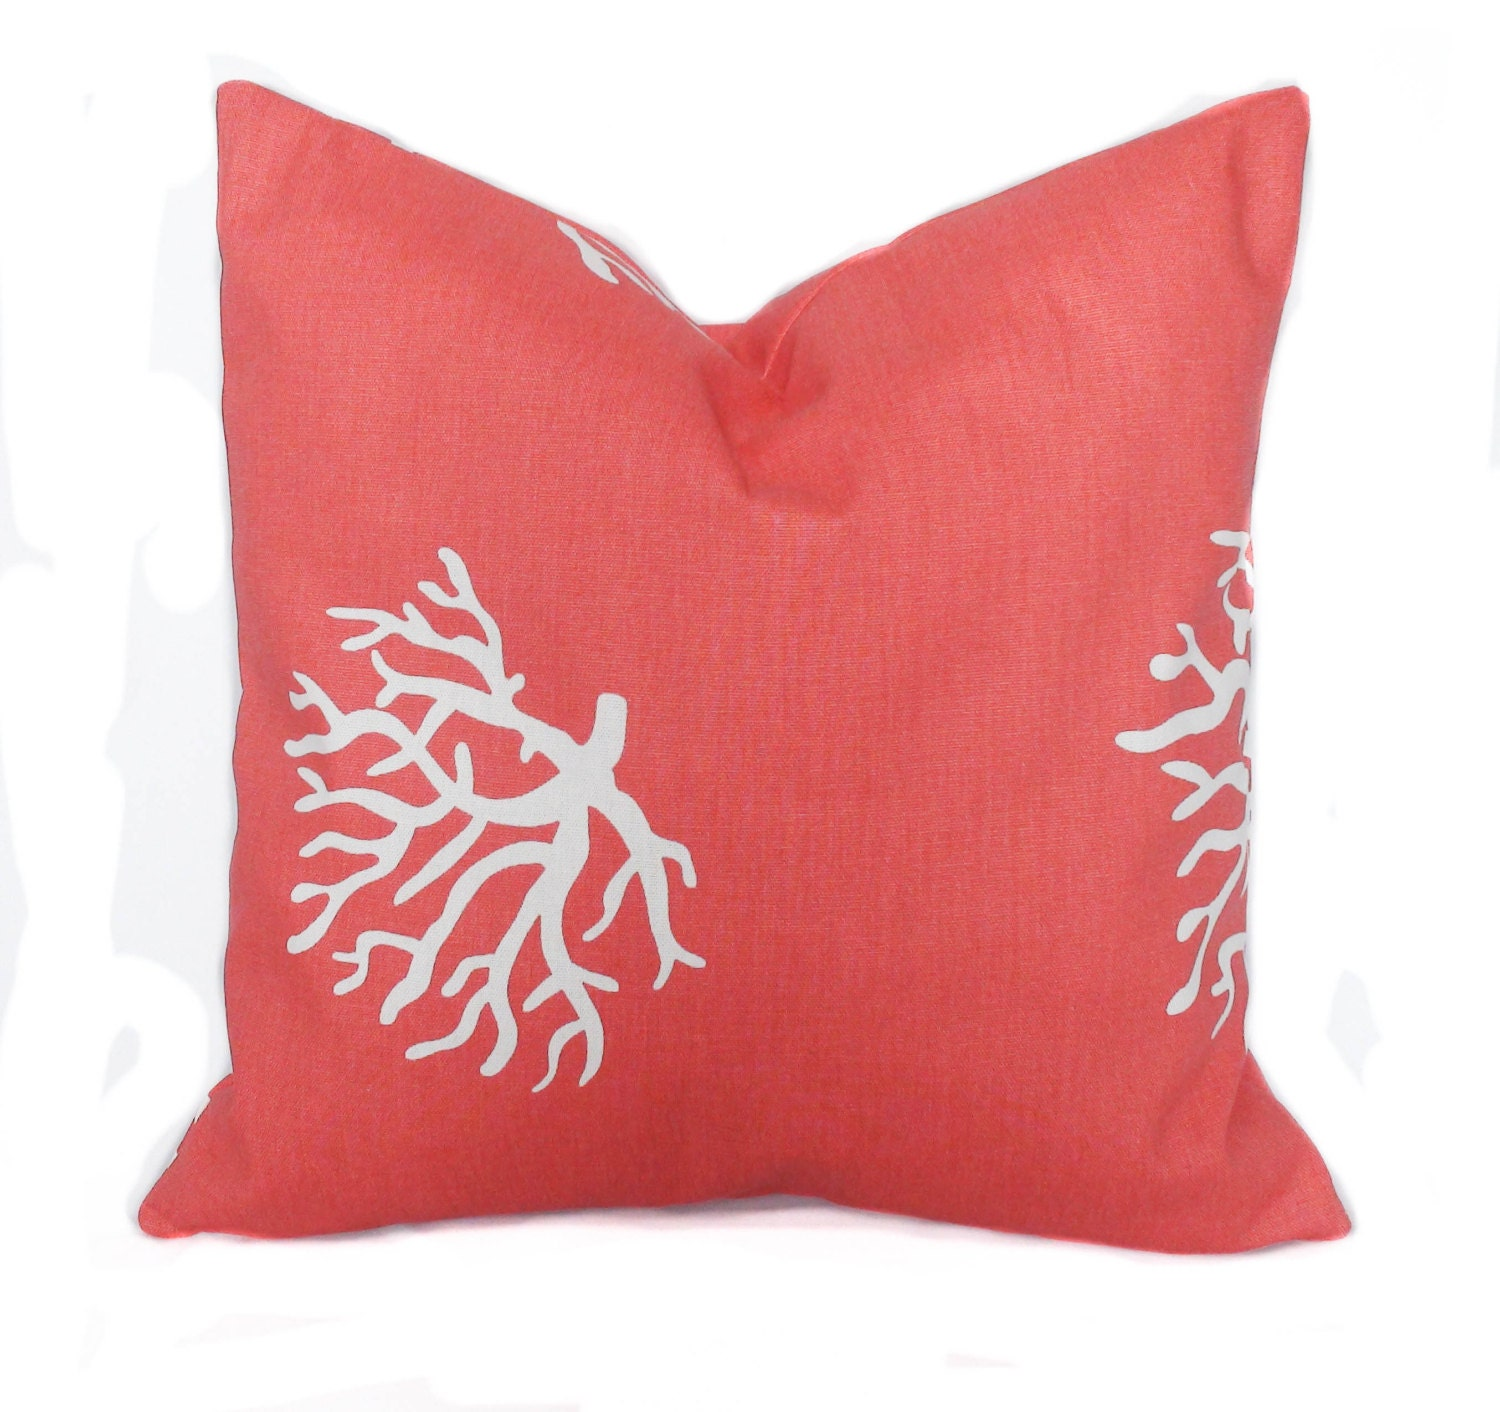 Throw pillows Coral pillows 18x18 Pillow cover Decorative